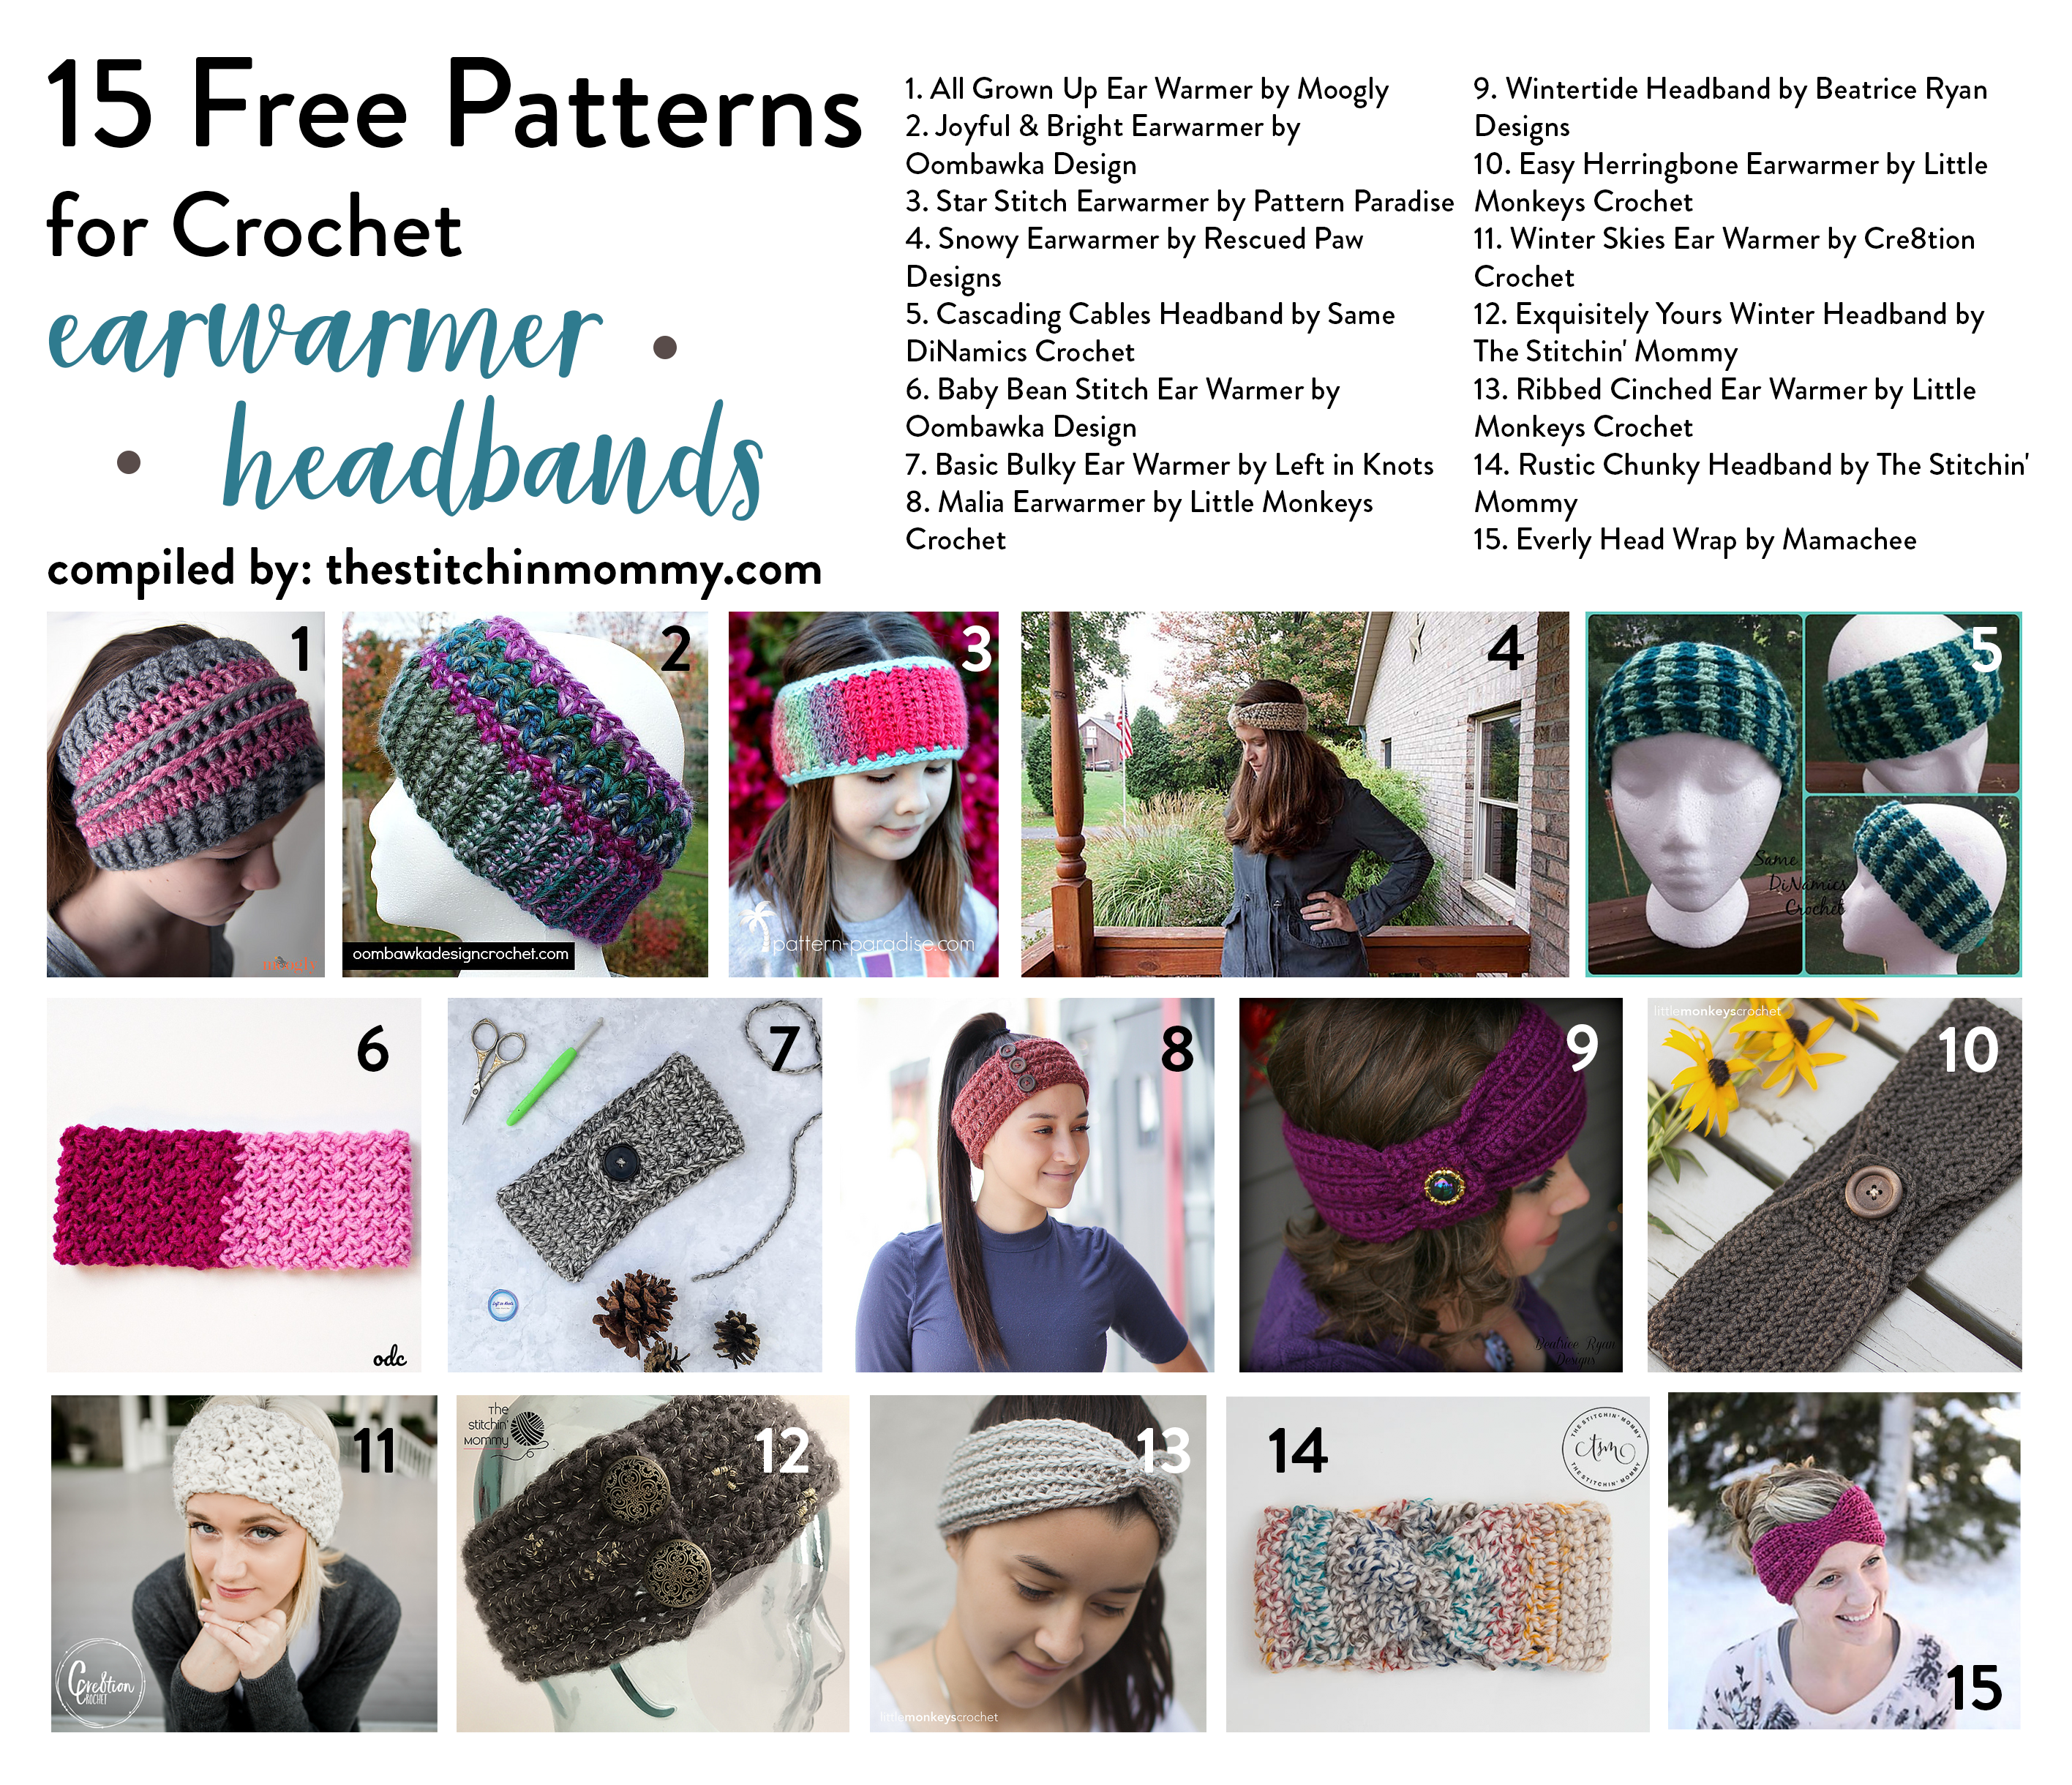 15 Free Patterns For Crochet Earwarmer Headbands The Stitchin Mommy